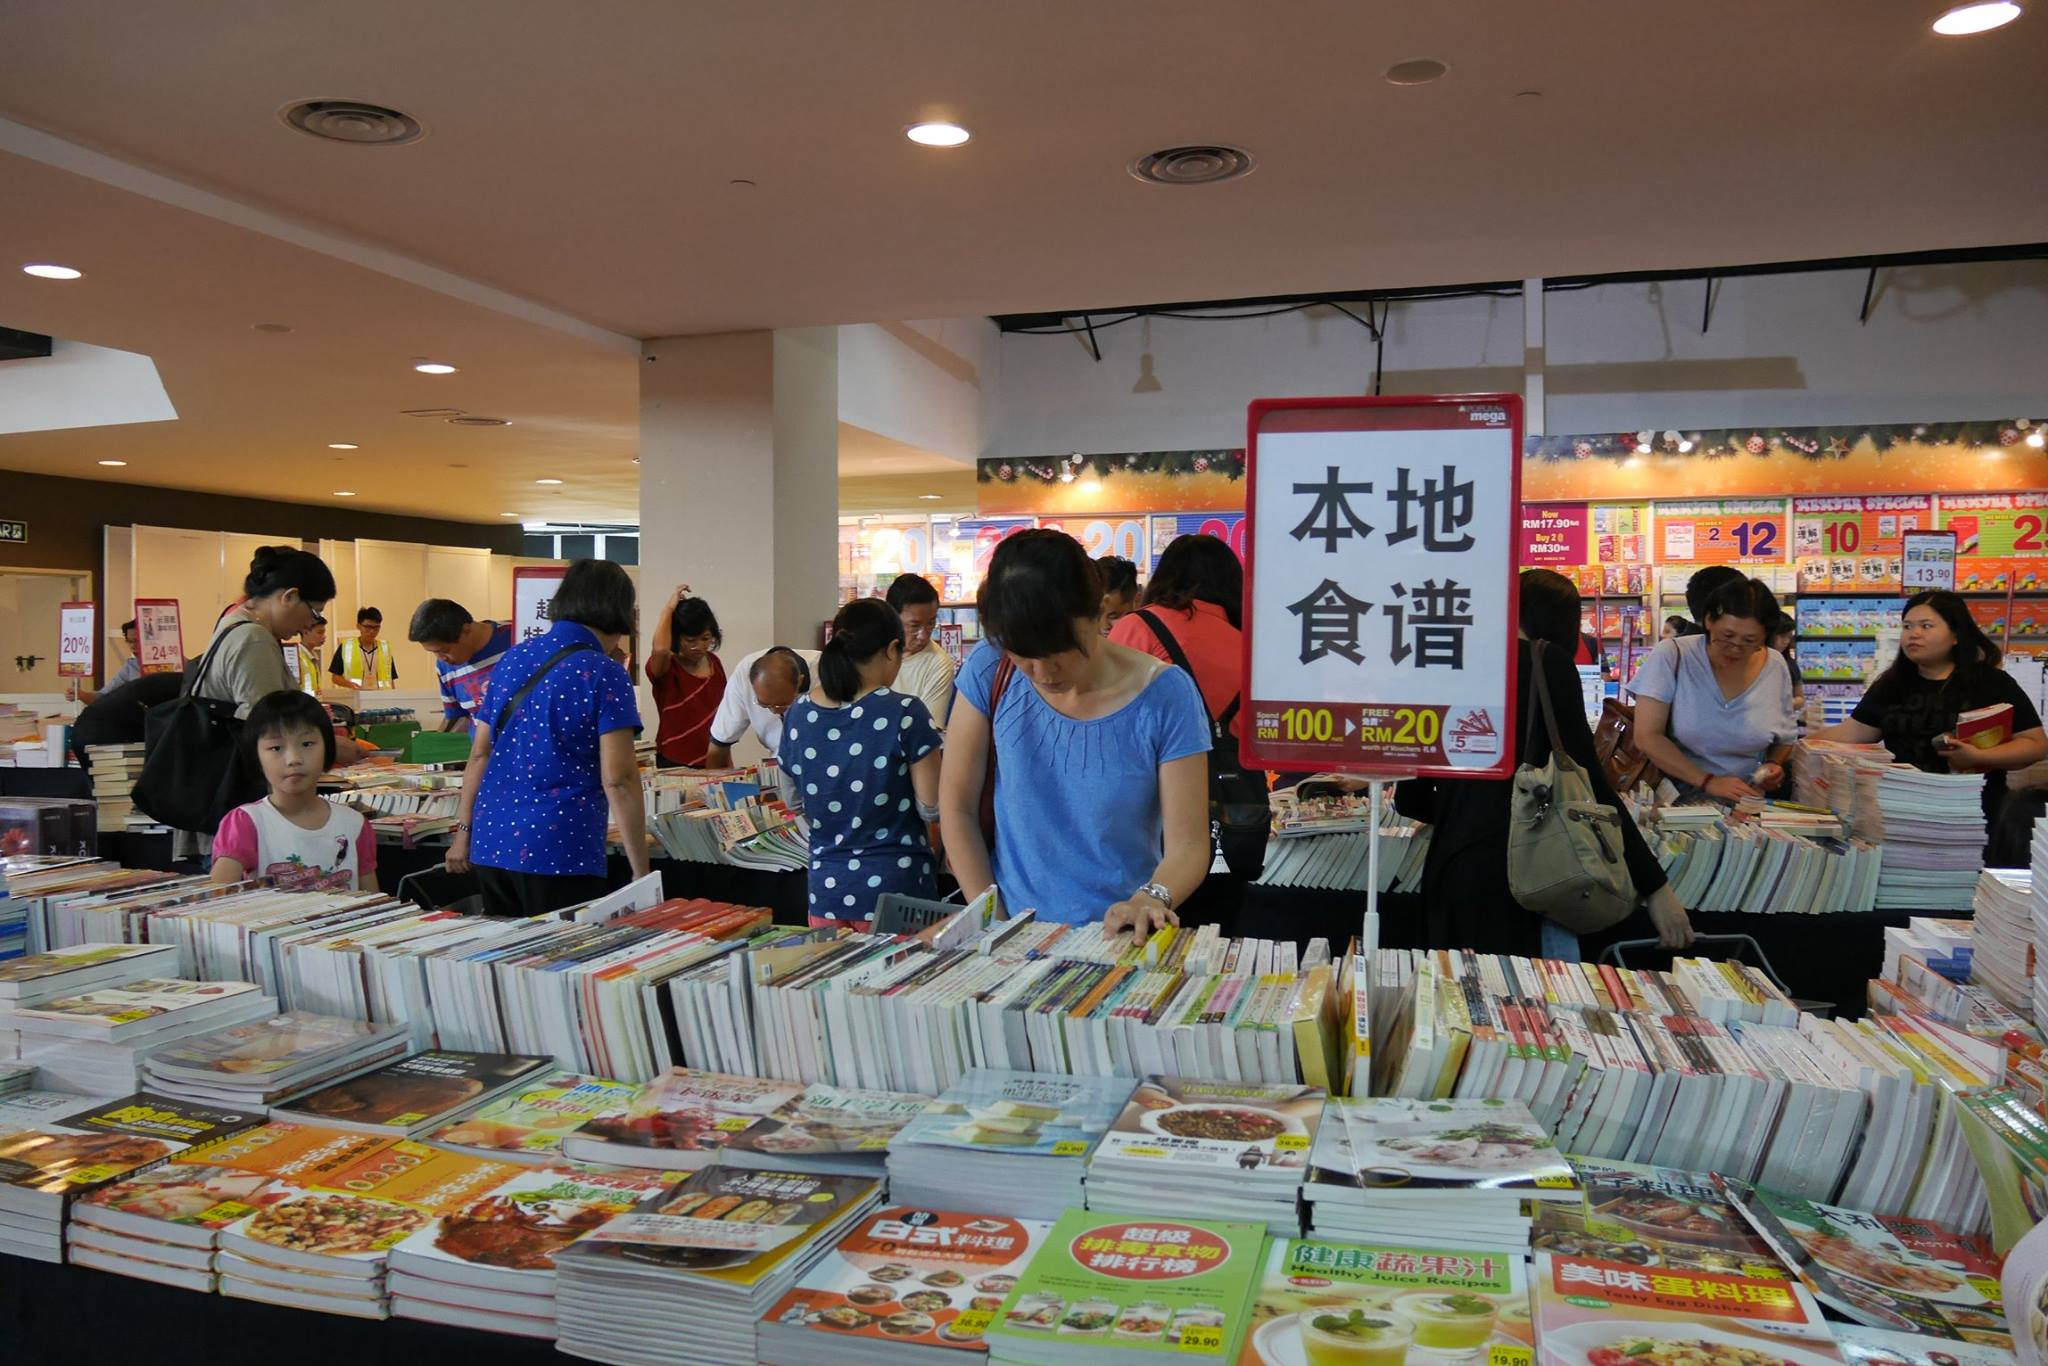 popular-mega-bookfair-kuching-cm091216-004